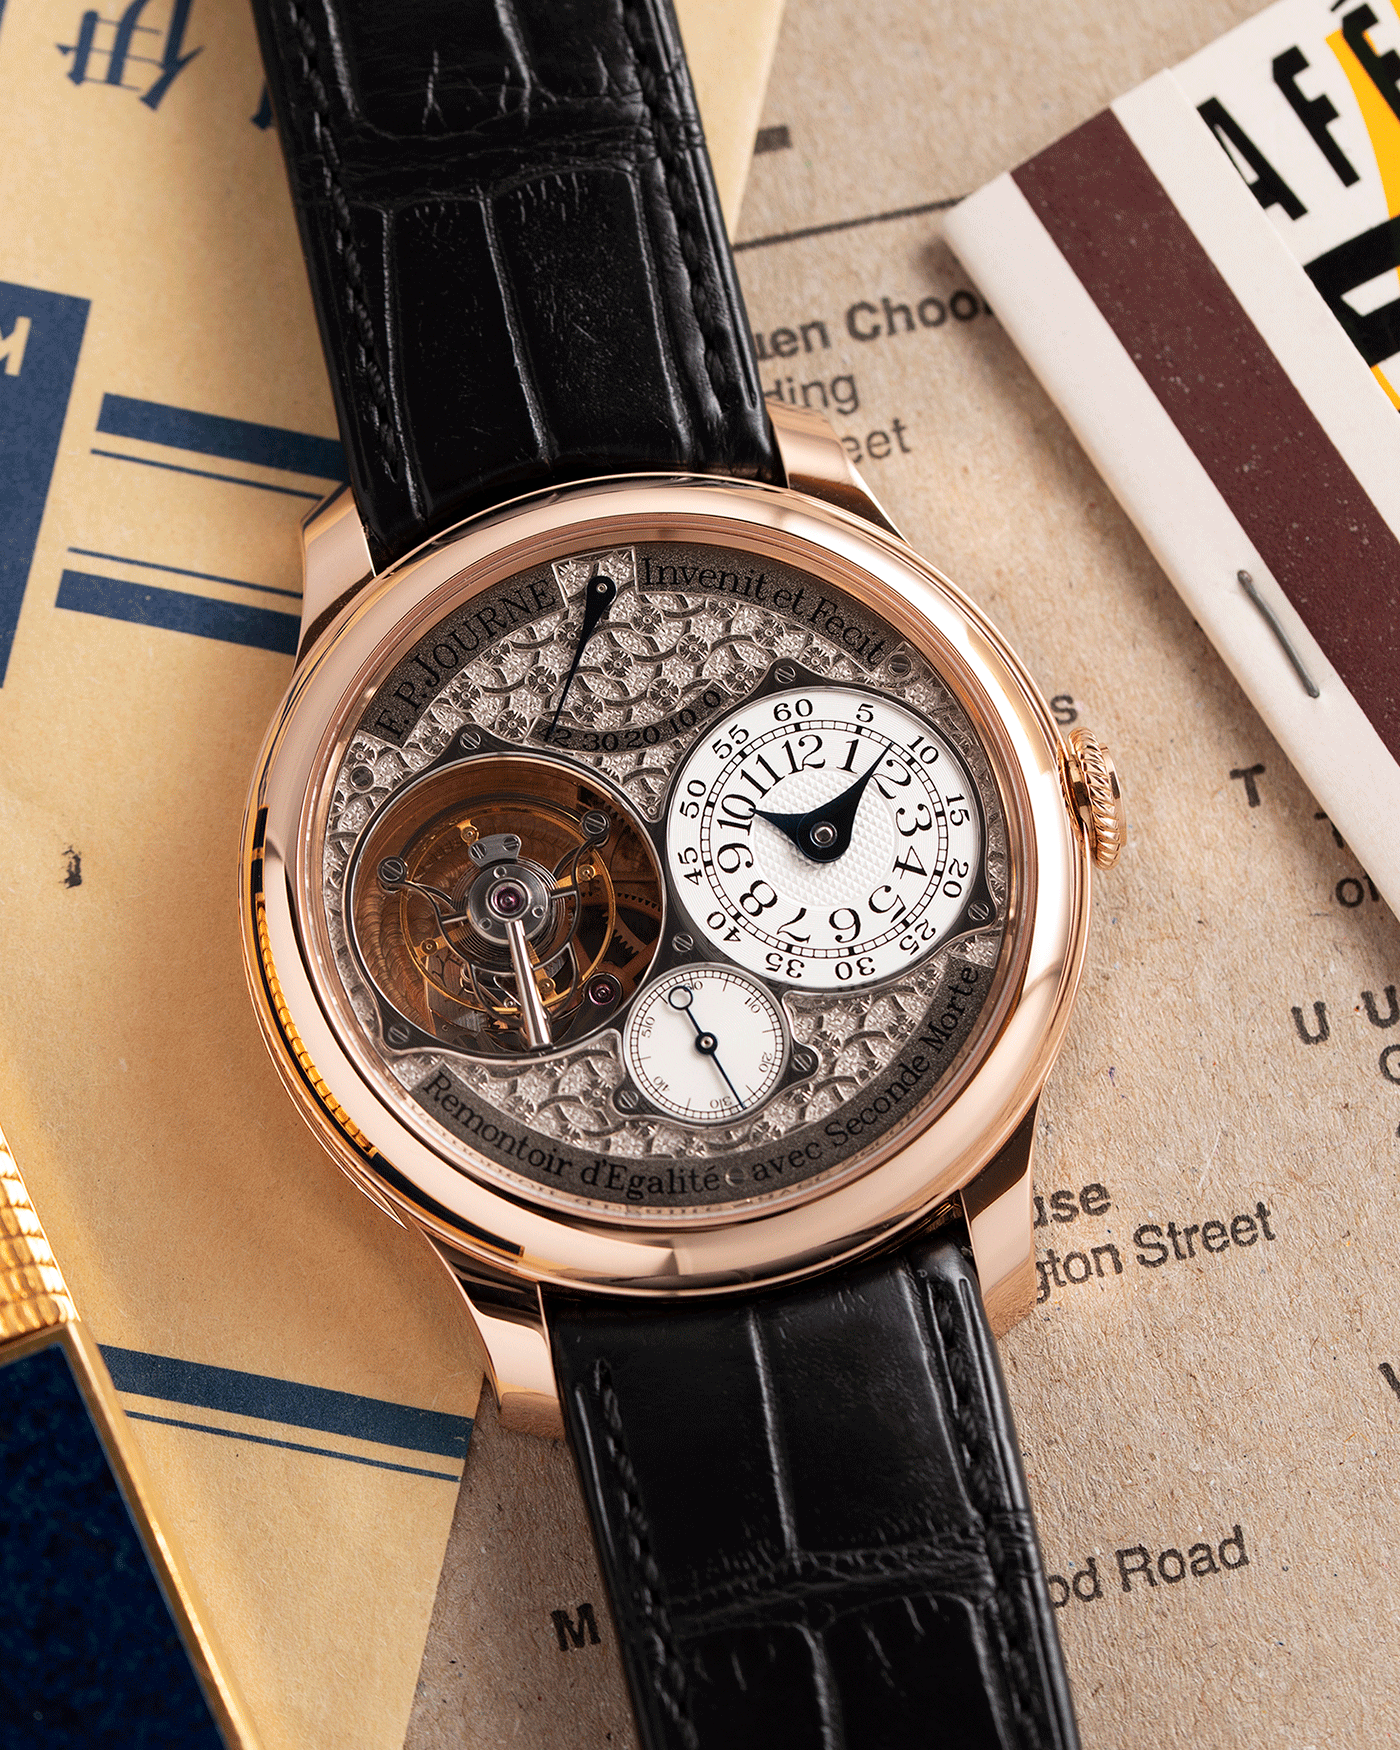 Brand: F.P. Journe Year: 2019 Model: Tourbillon Souverain Regence Circulaire Material: Rose Gold Movement: Calibre F.P.Journe 1403 Case Diameter: 40mm Bracelet/Strap: F.P. Journe Navy Black Alligator and Rose Gold Signed Tang Buckle